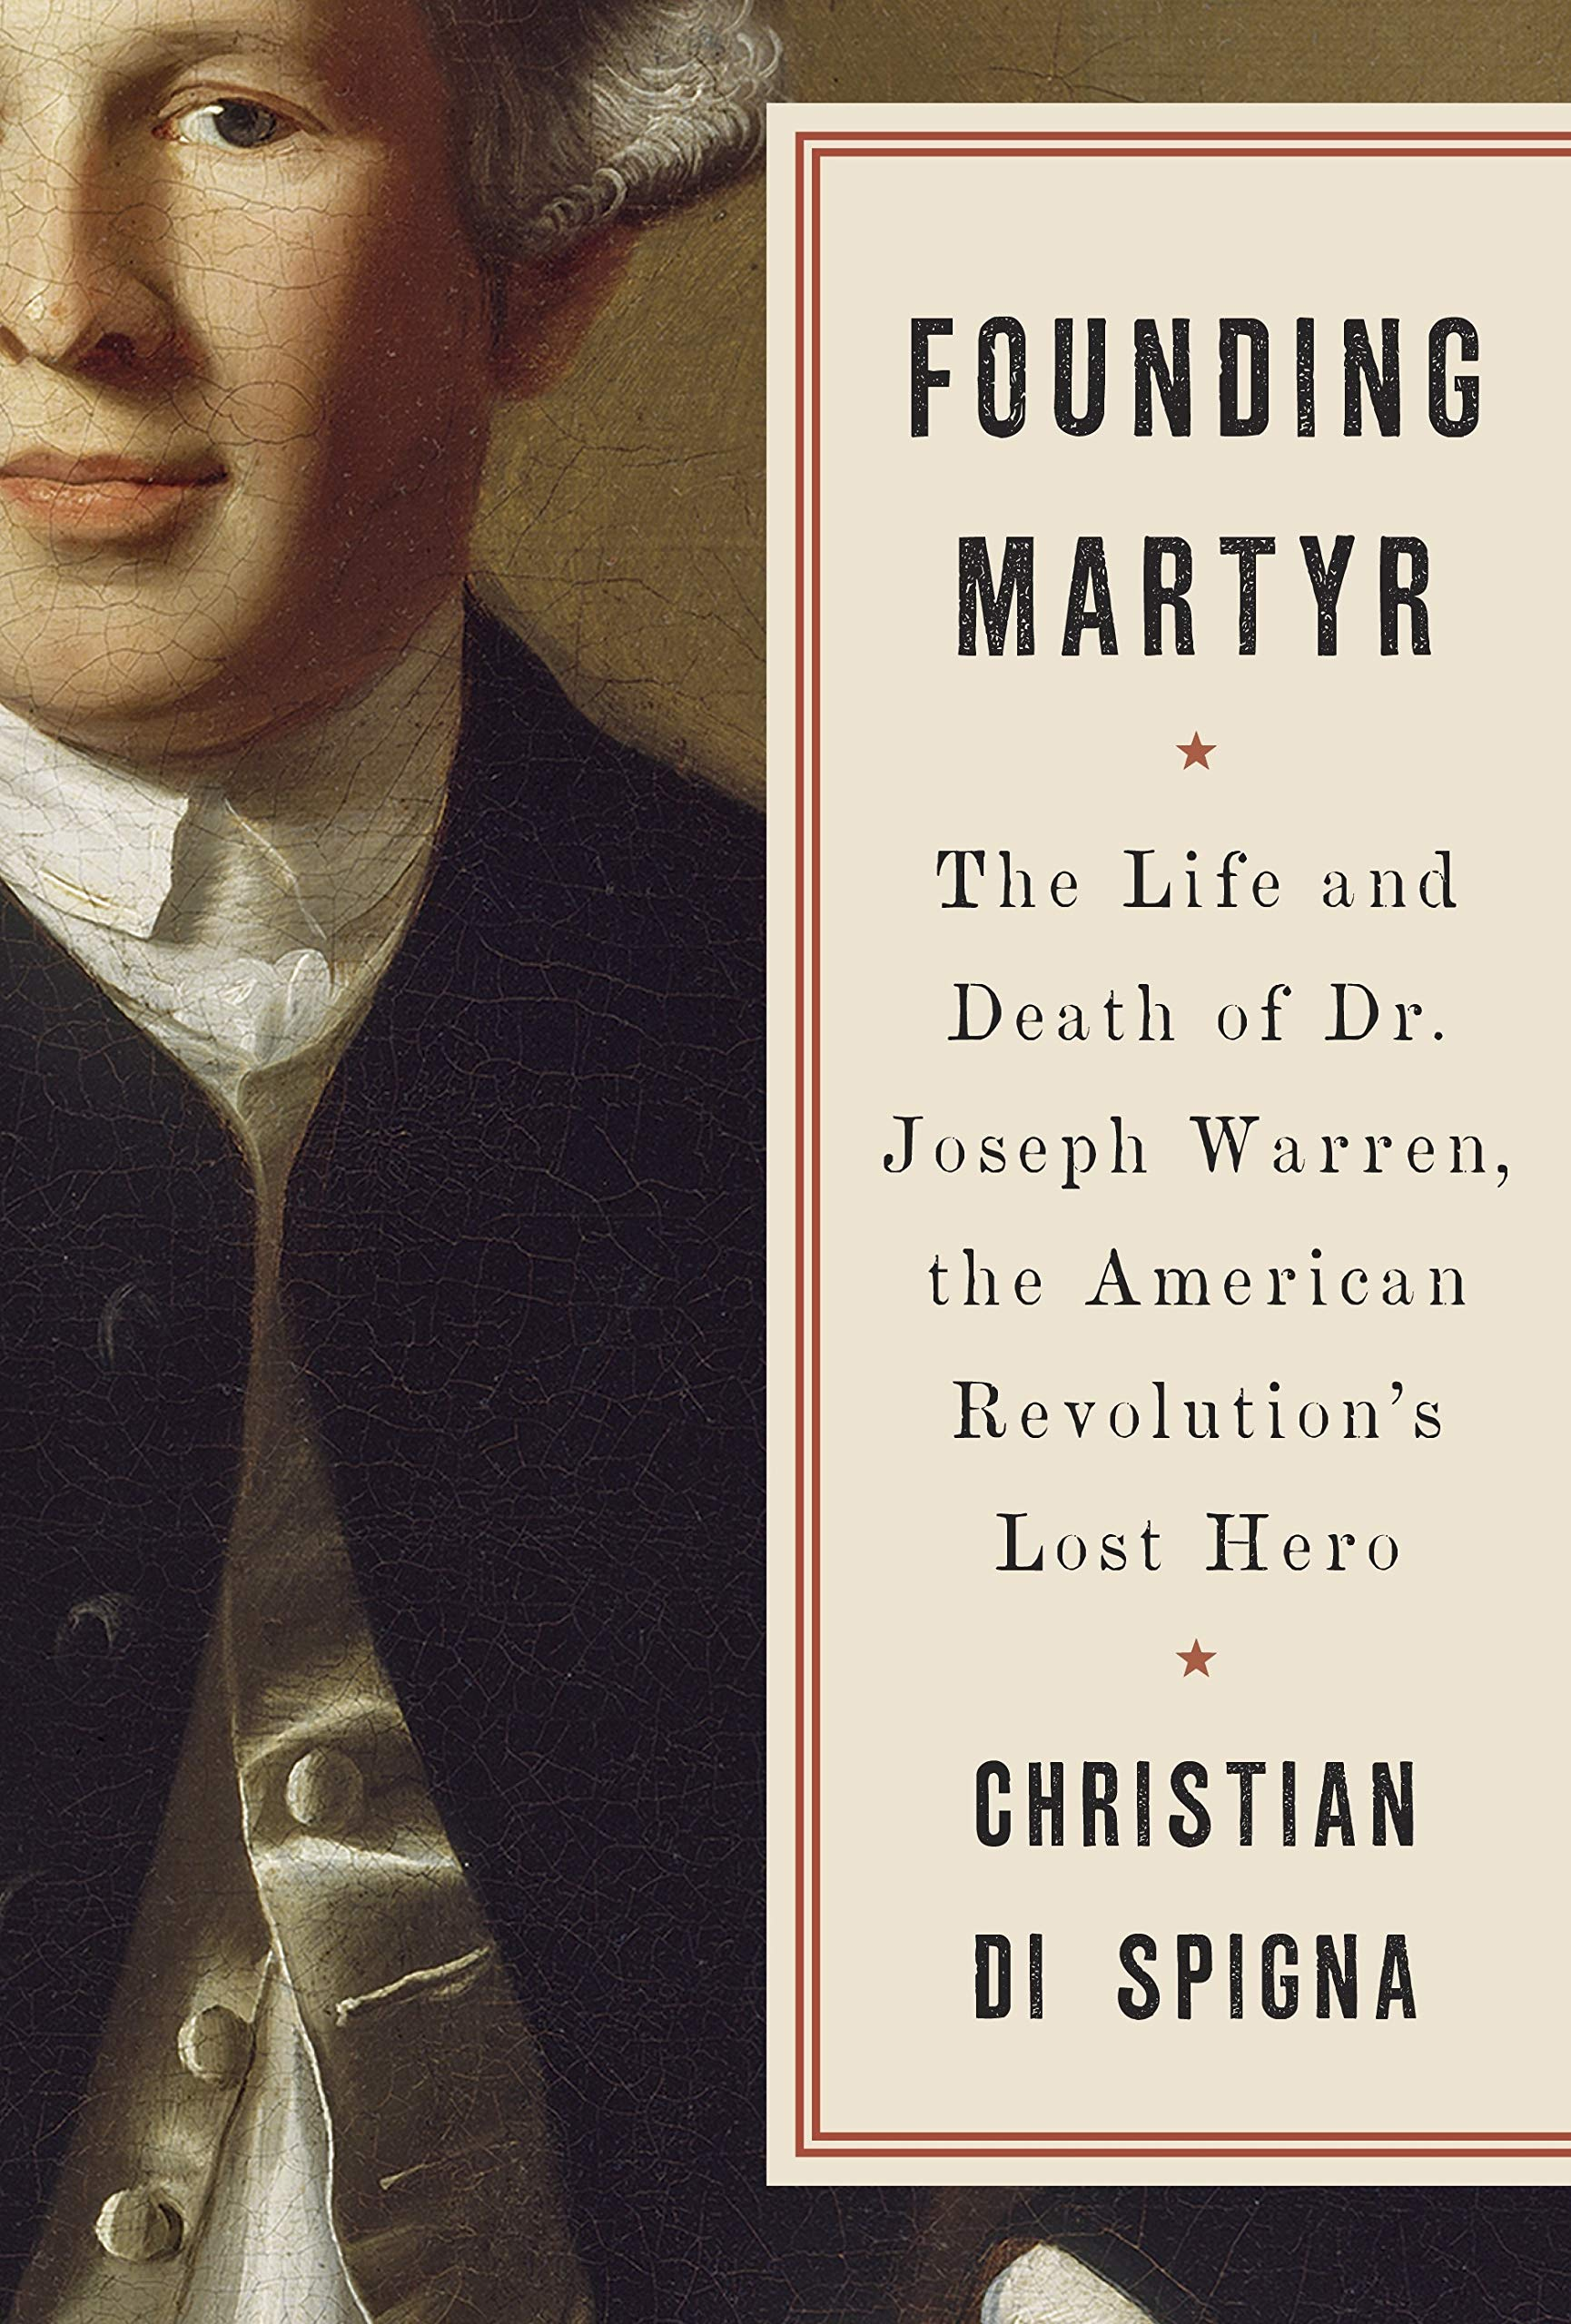 Founding Martyr: The Life and Death of Dr. Joseph Warren, the American Revolution's Lost Hero ebook